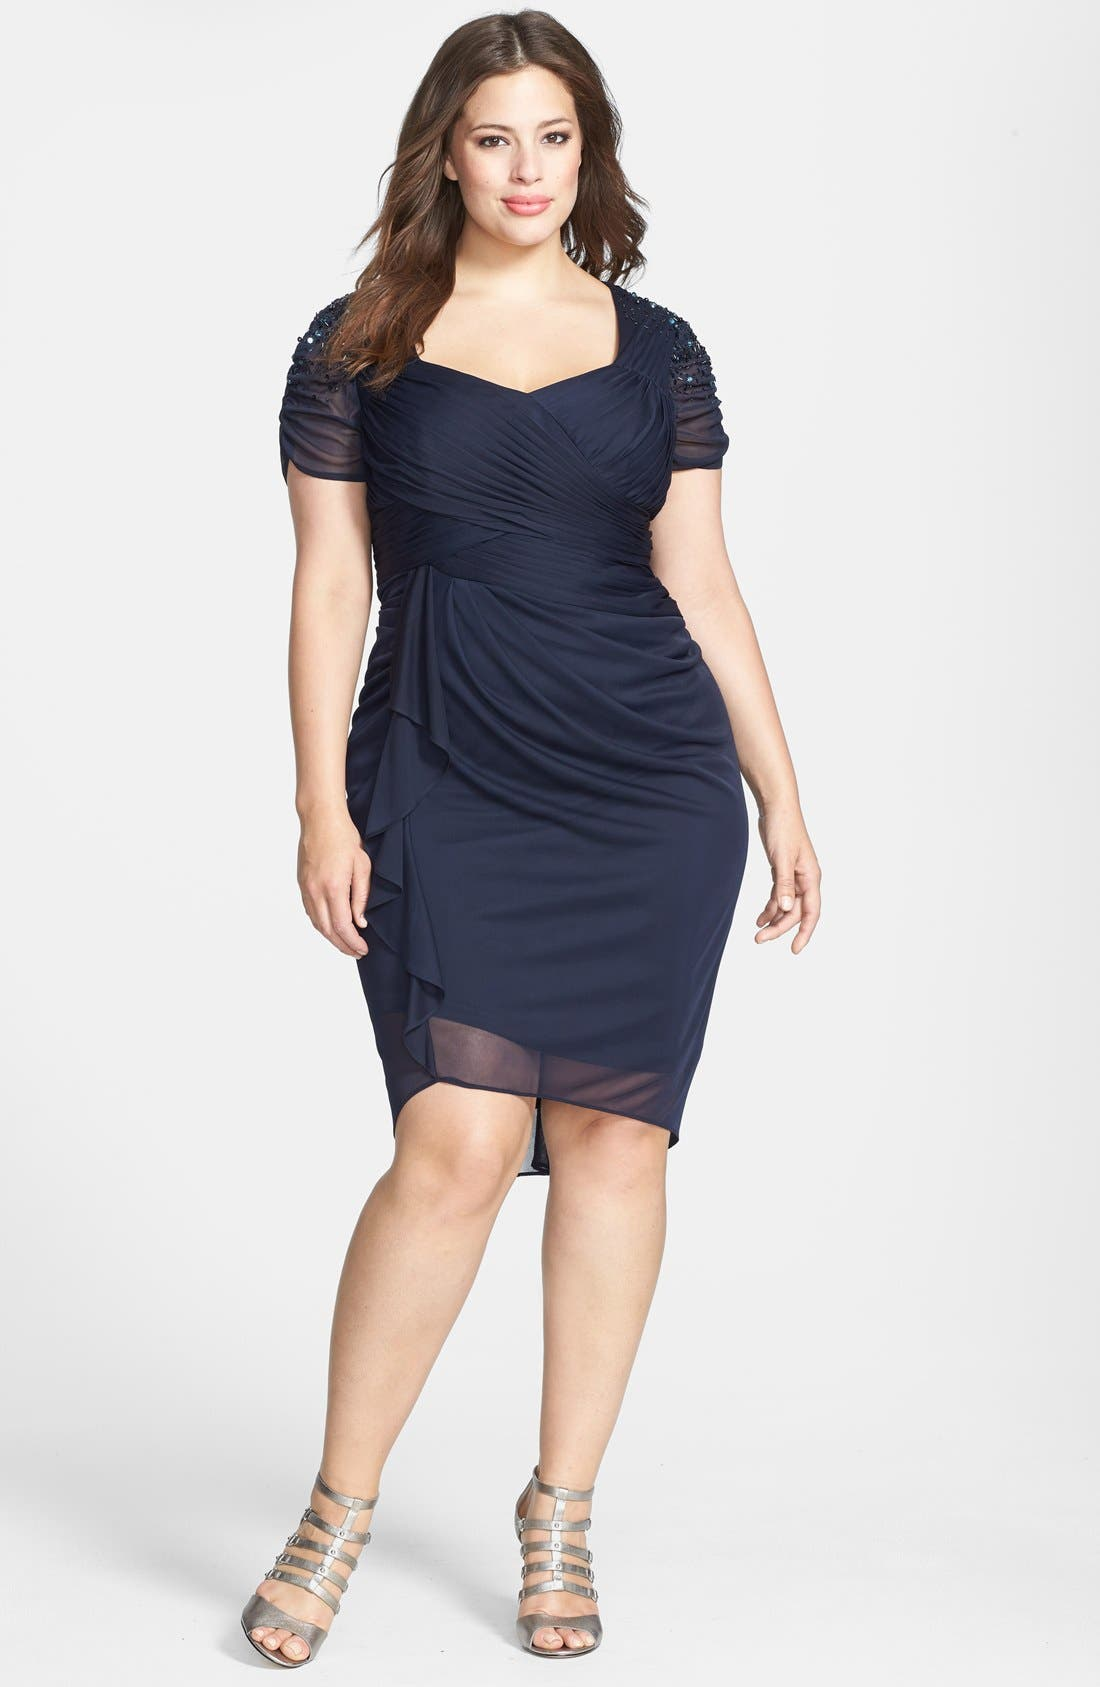 Alternate Image 1 Selected - Adrianna Papell Cap Sleeve Side Ruched Dress (Plus Size)